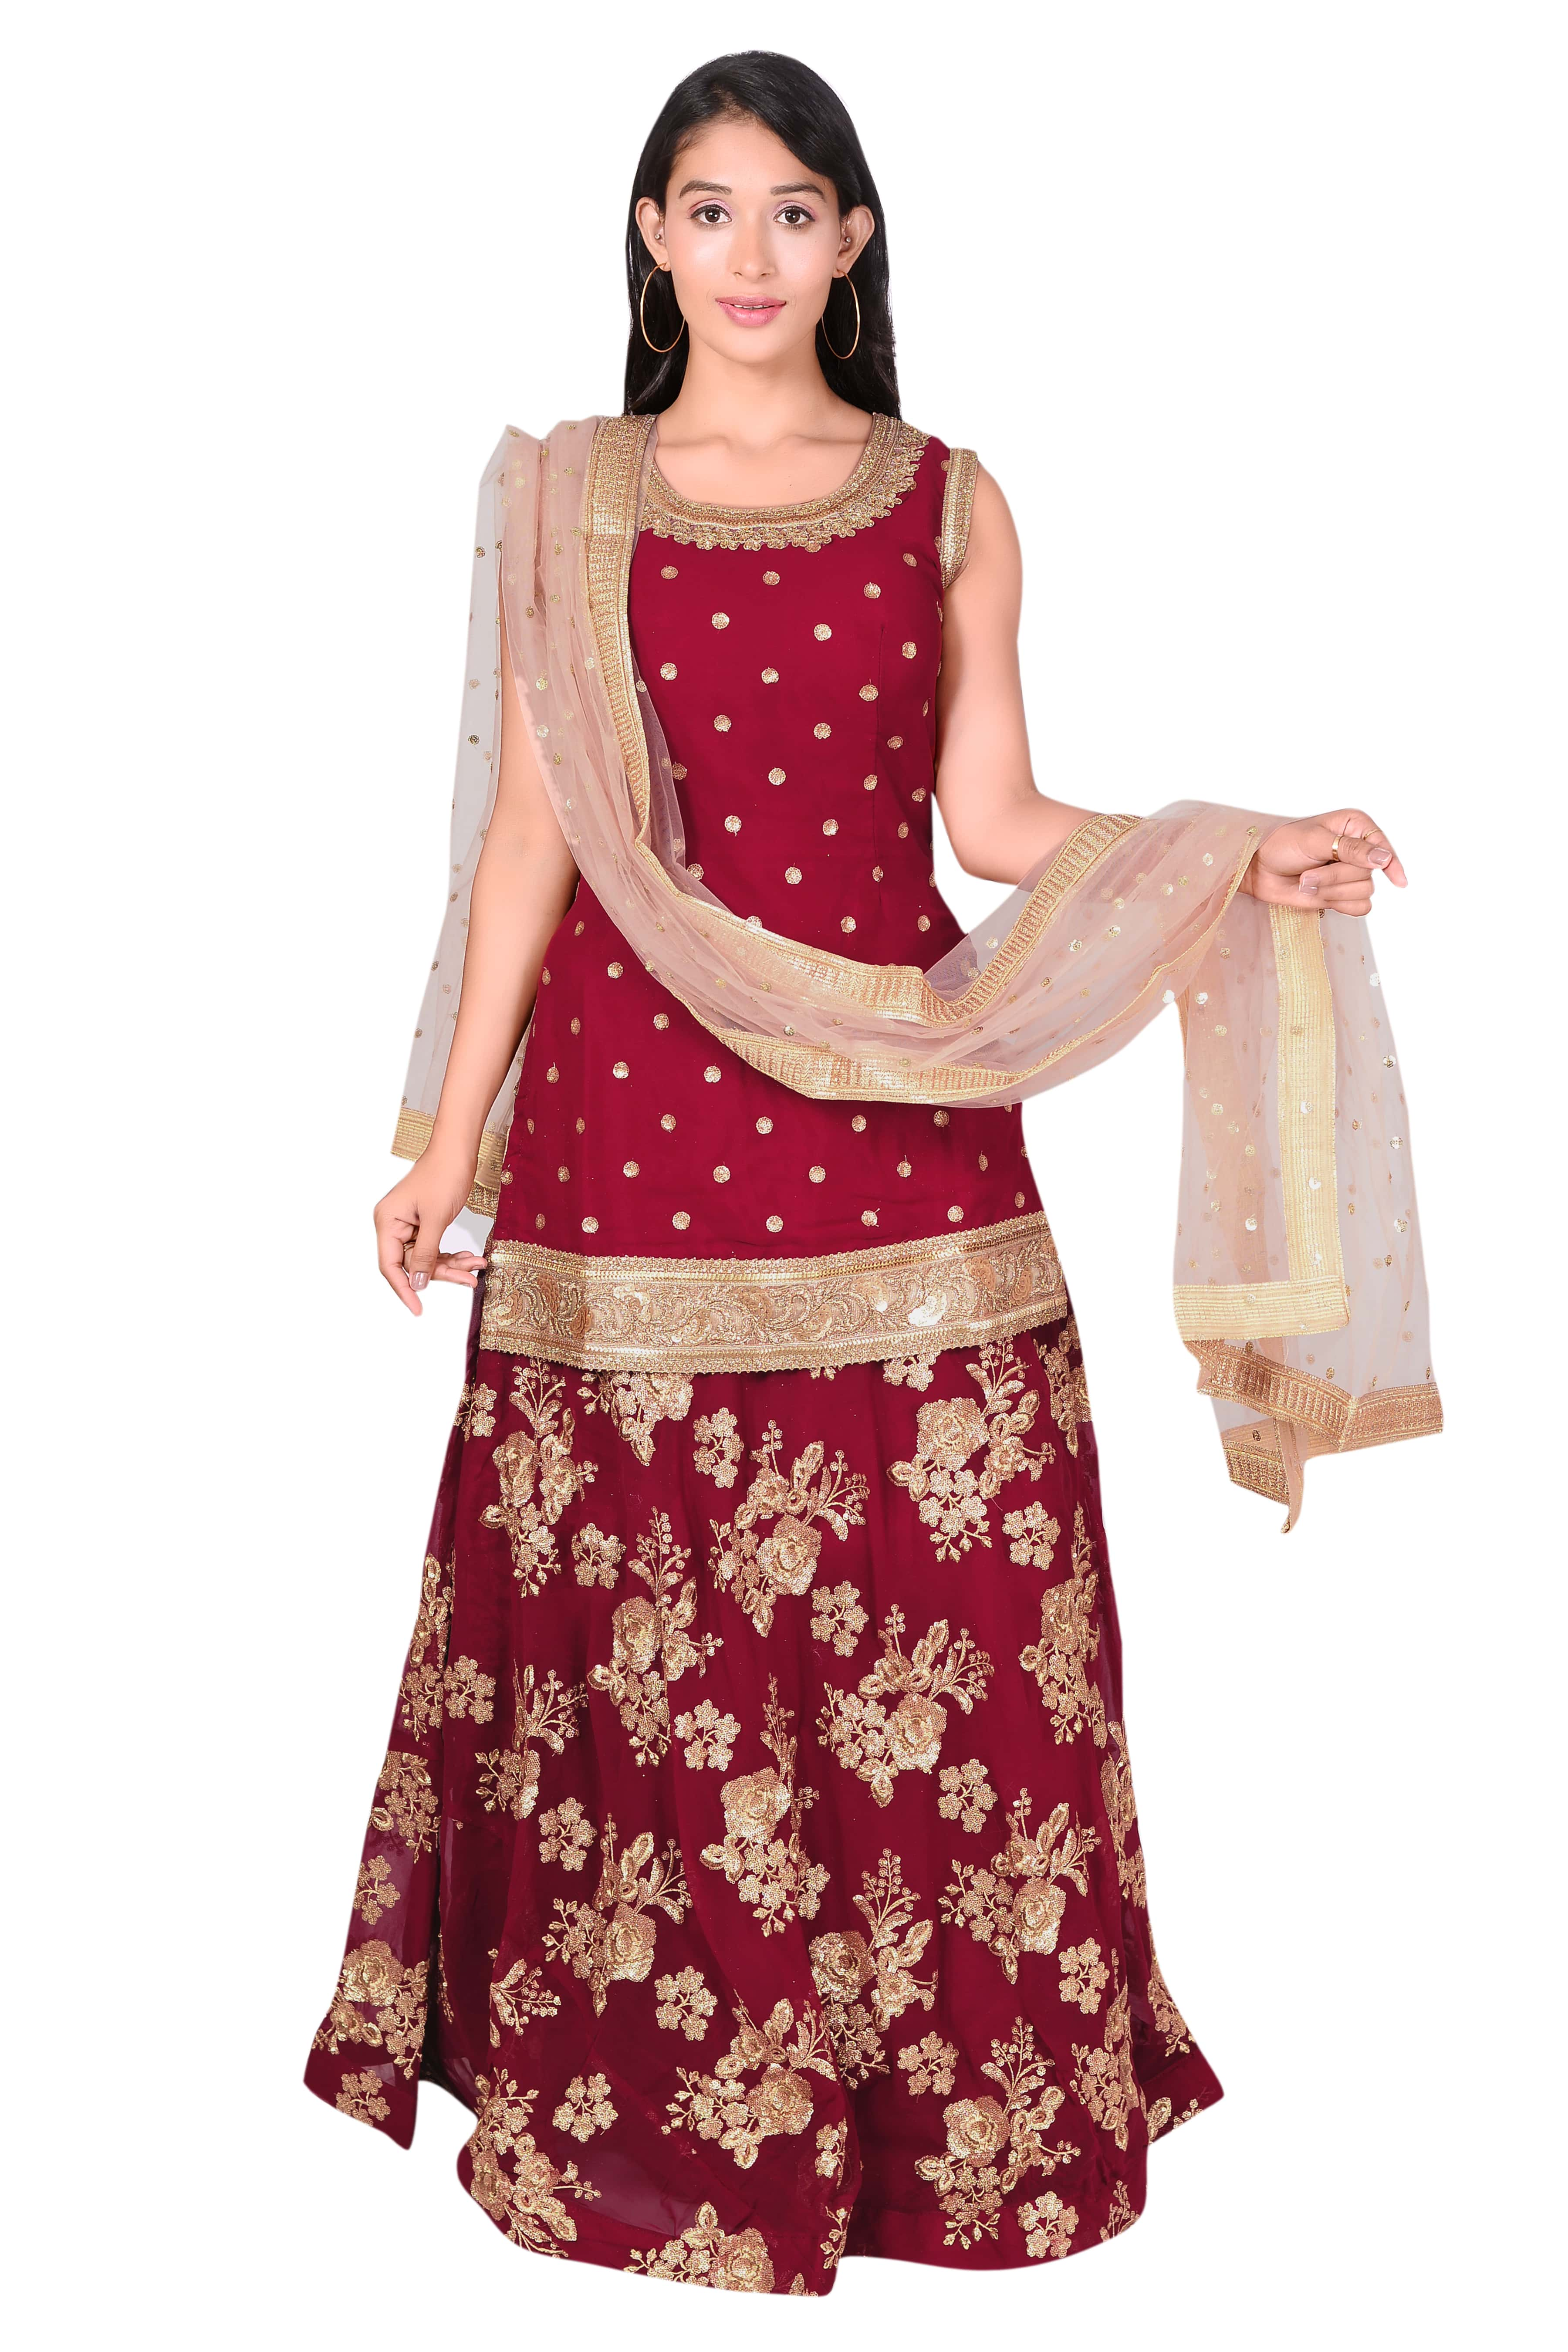 Trending Ethnic Wear Choices To Try This Karwa Chauth